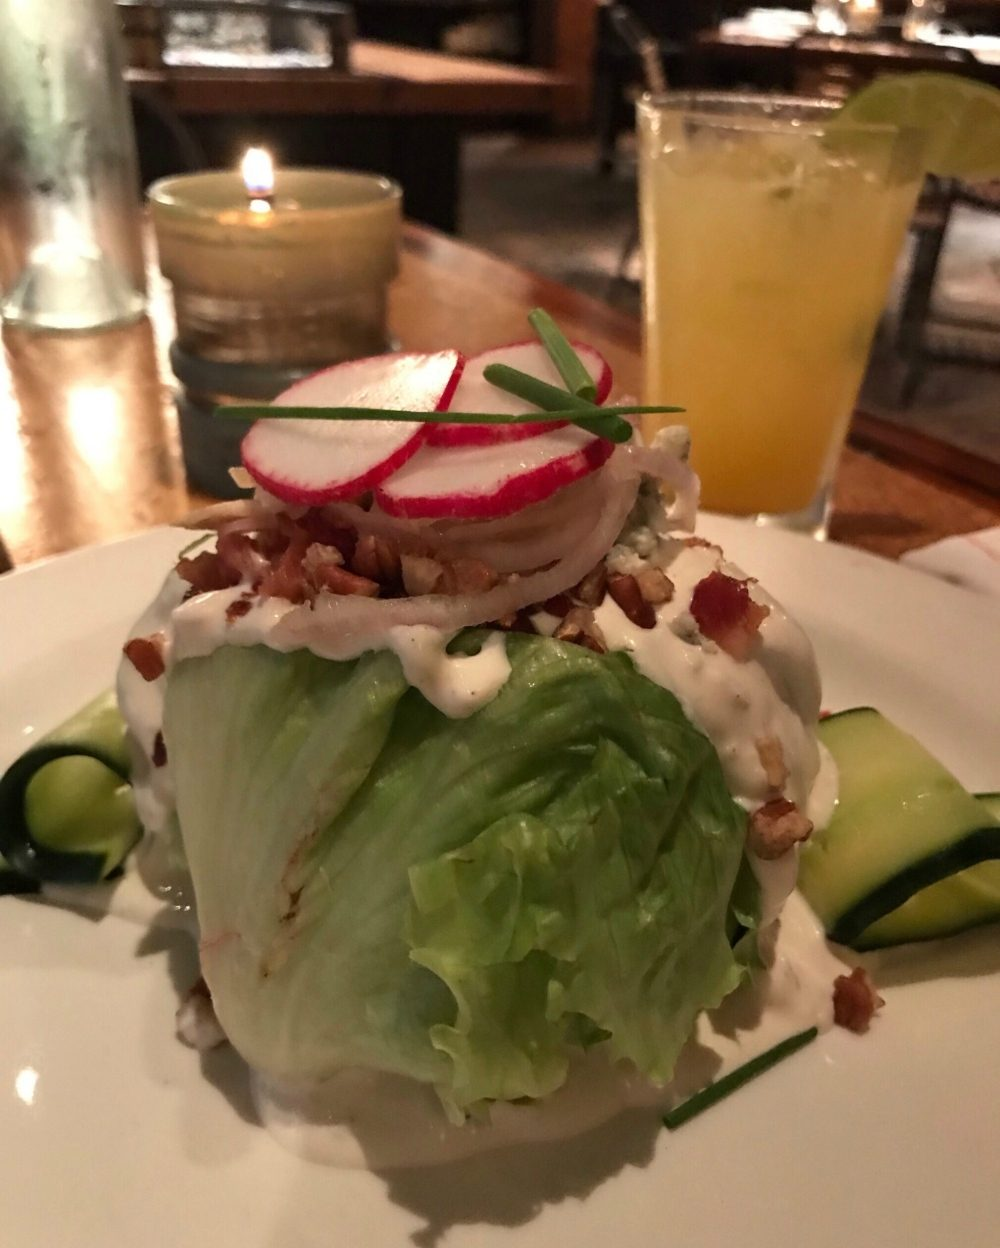 Steakhouse wedge salad at Central in Alabama Photo Heatheronhertravels